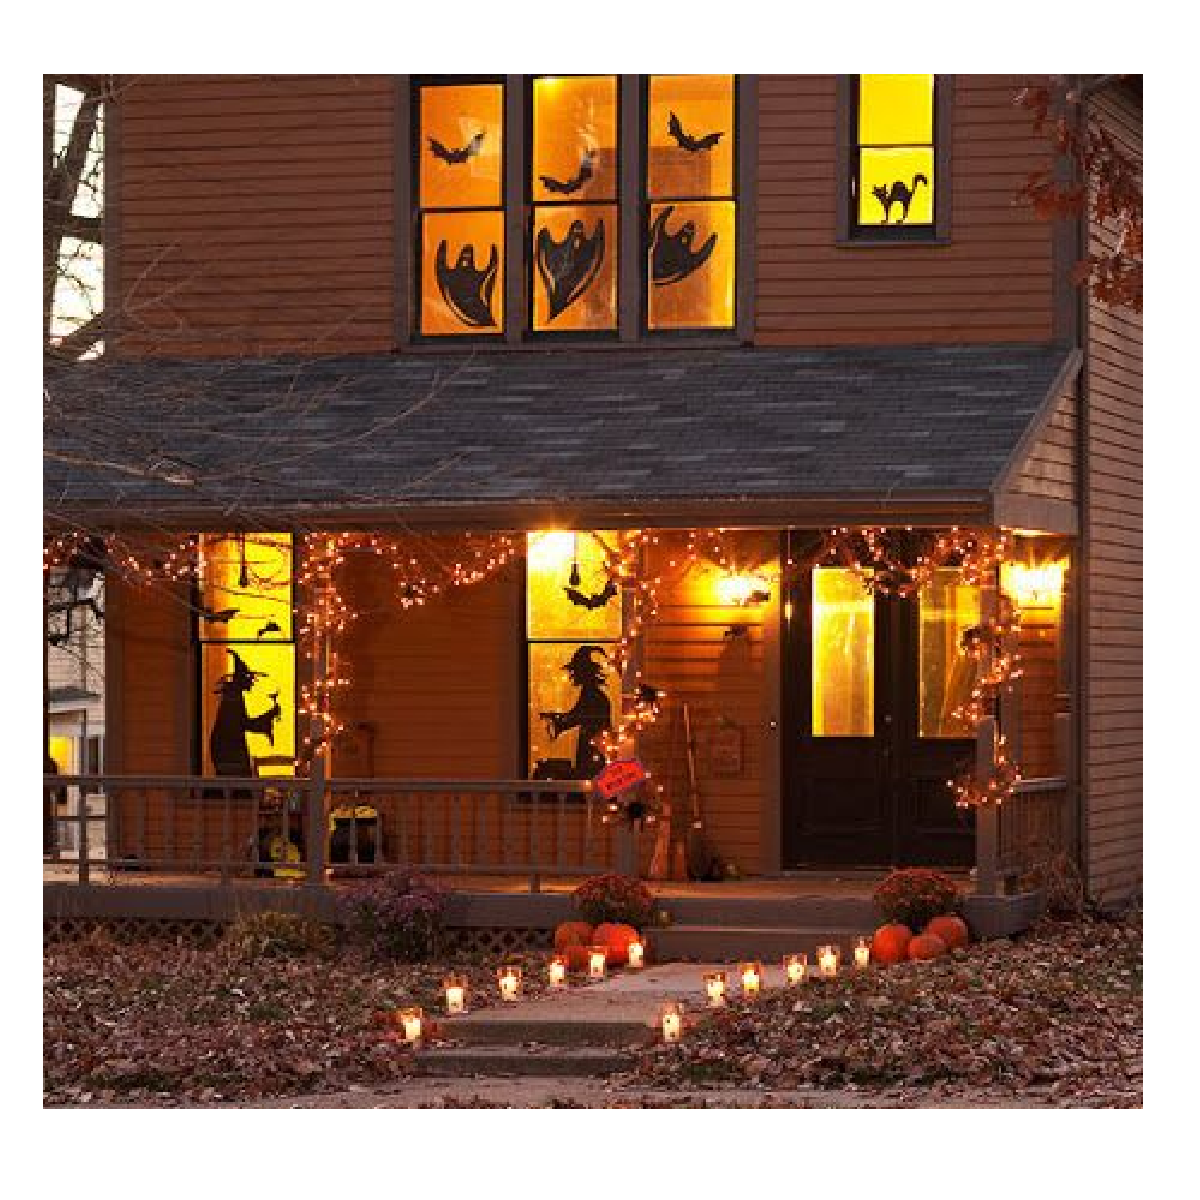 Comment decorer ma maison pour halloween for Decorer ma maison